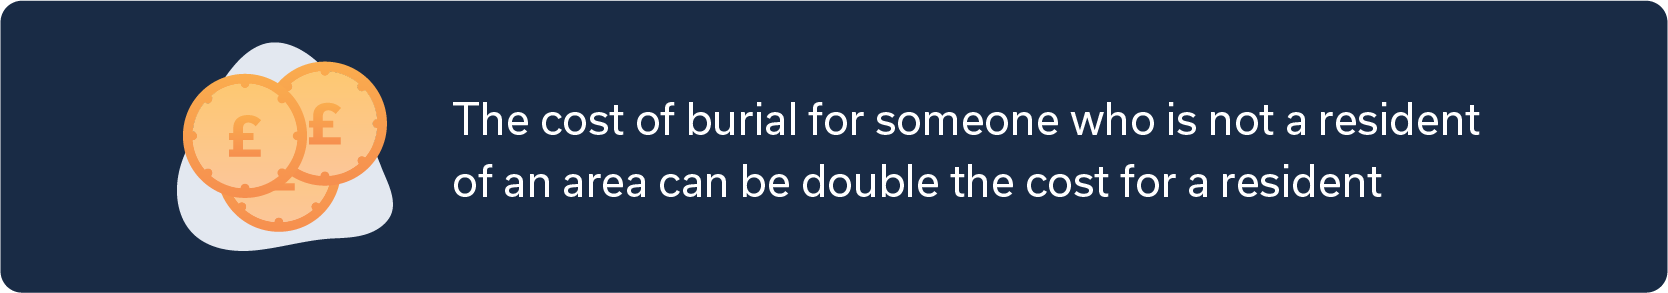 Funeral cost statistic